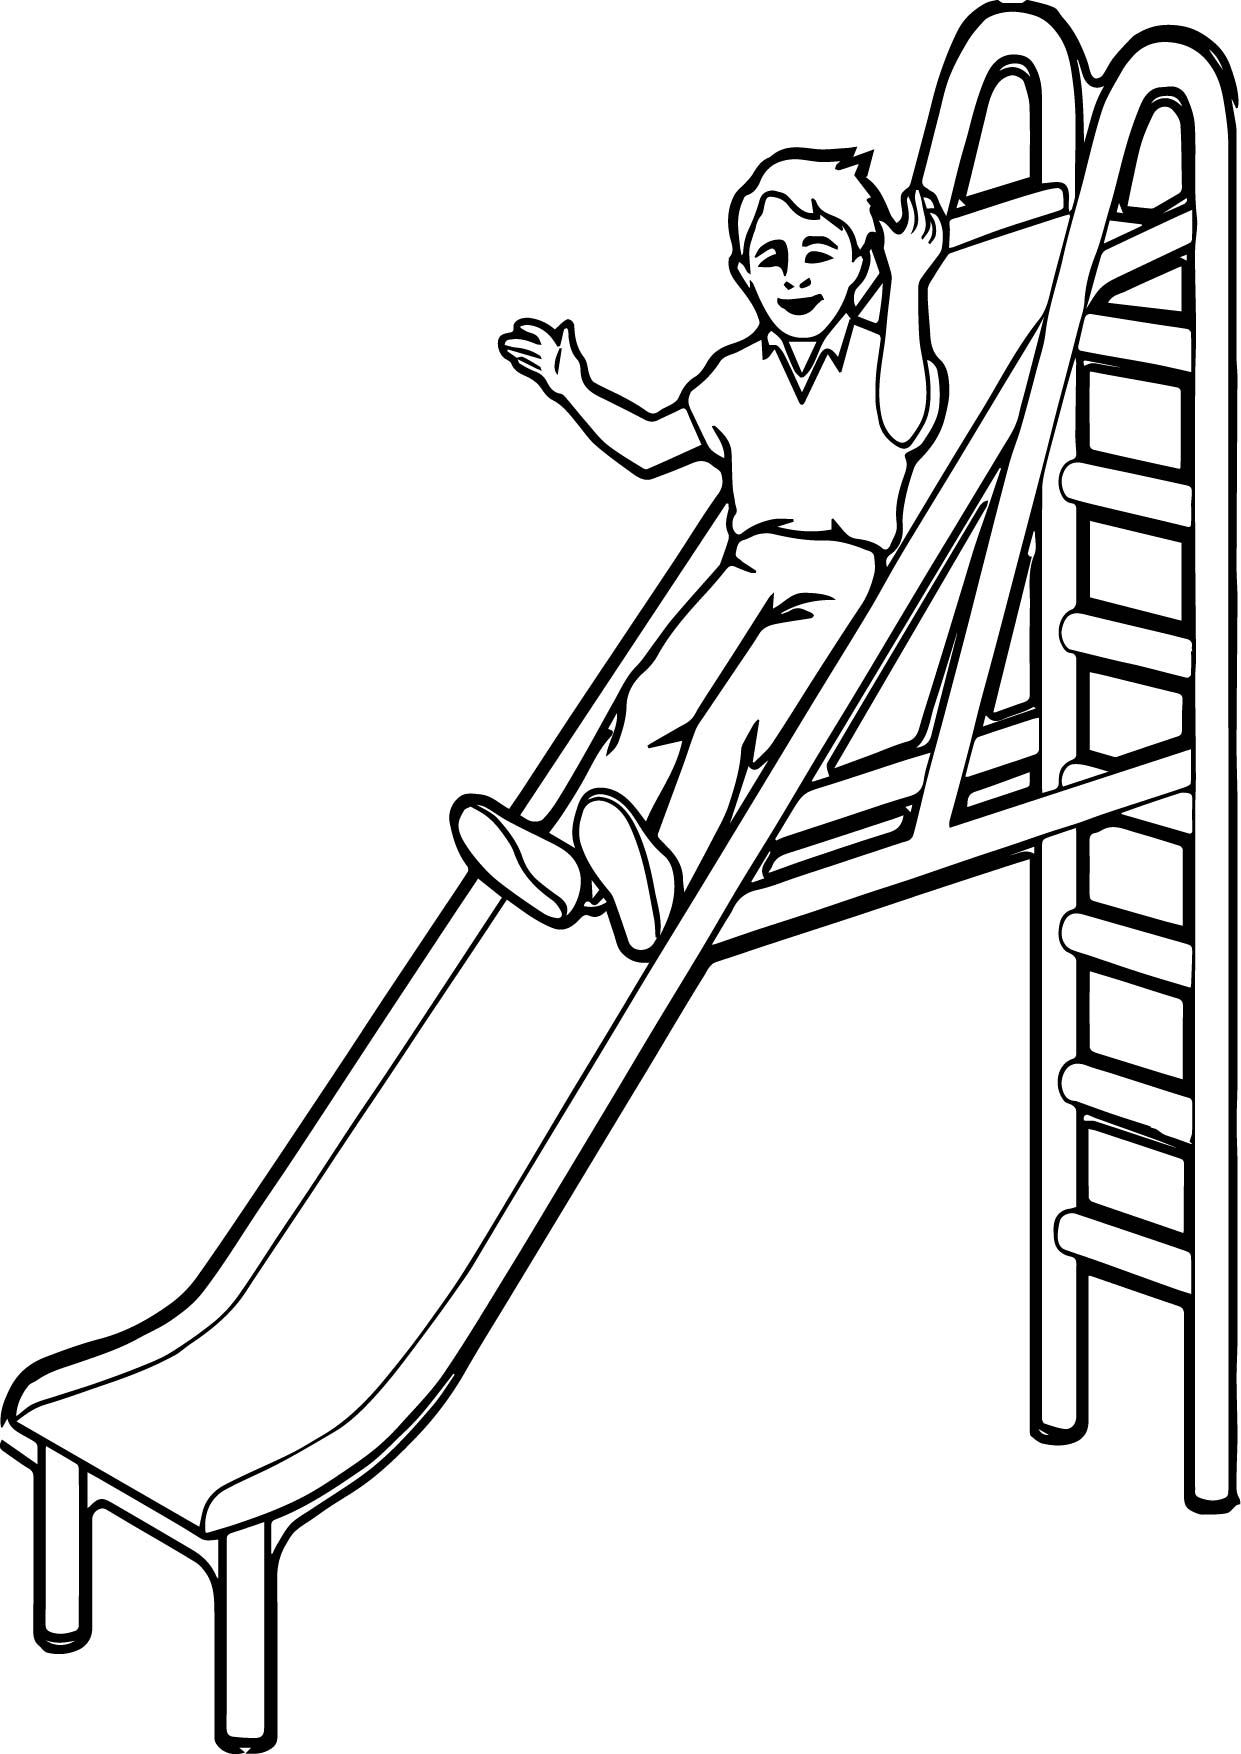 Playground 06 Playground Coloring Pages Playground Coloring